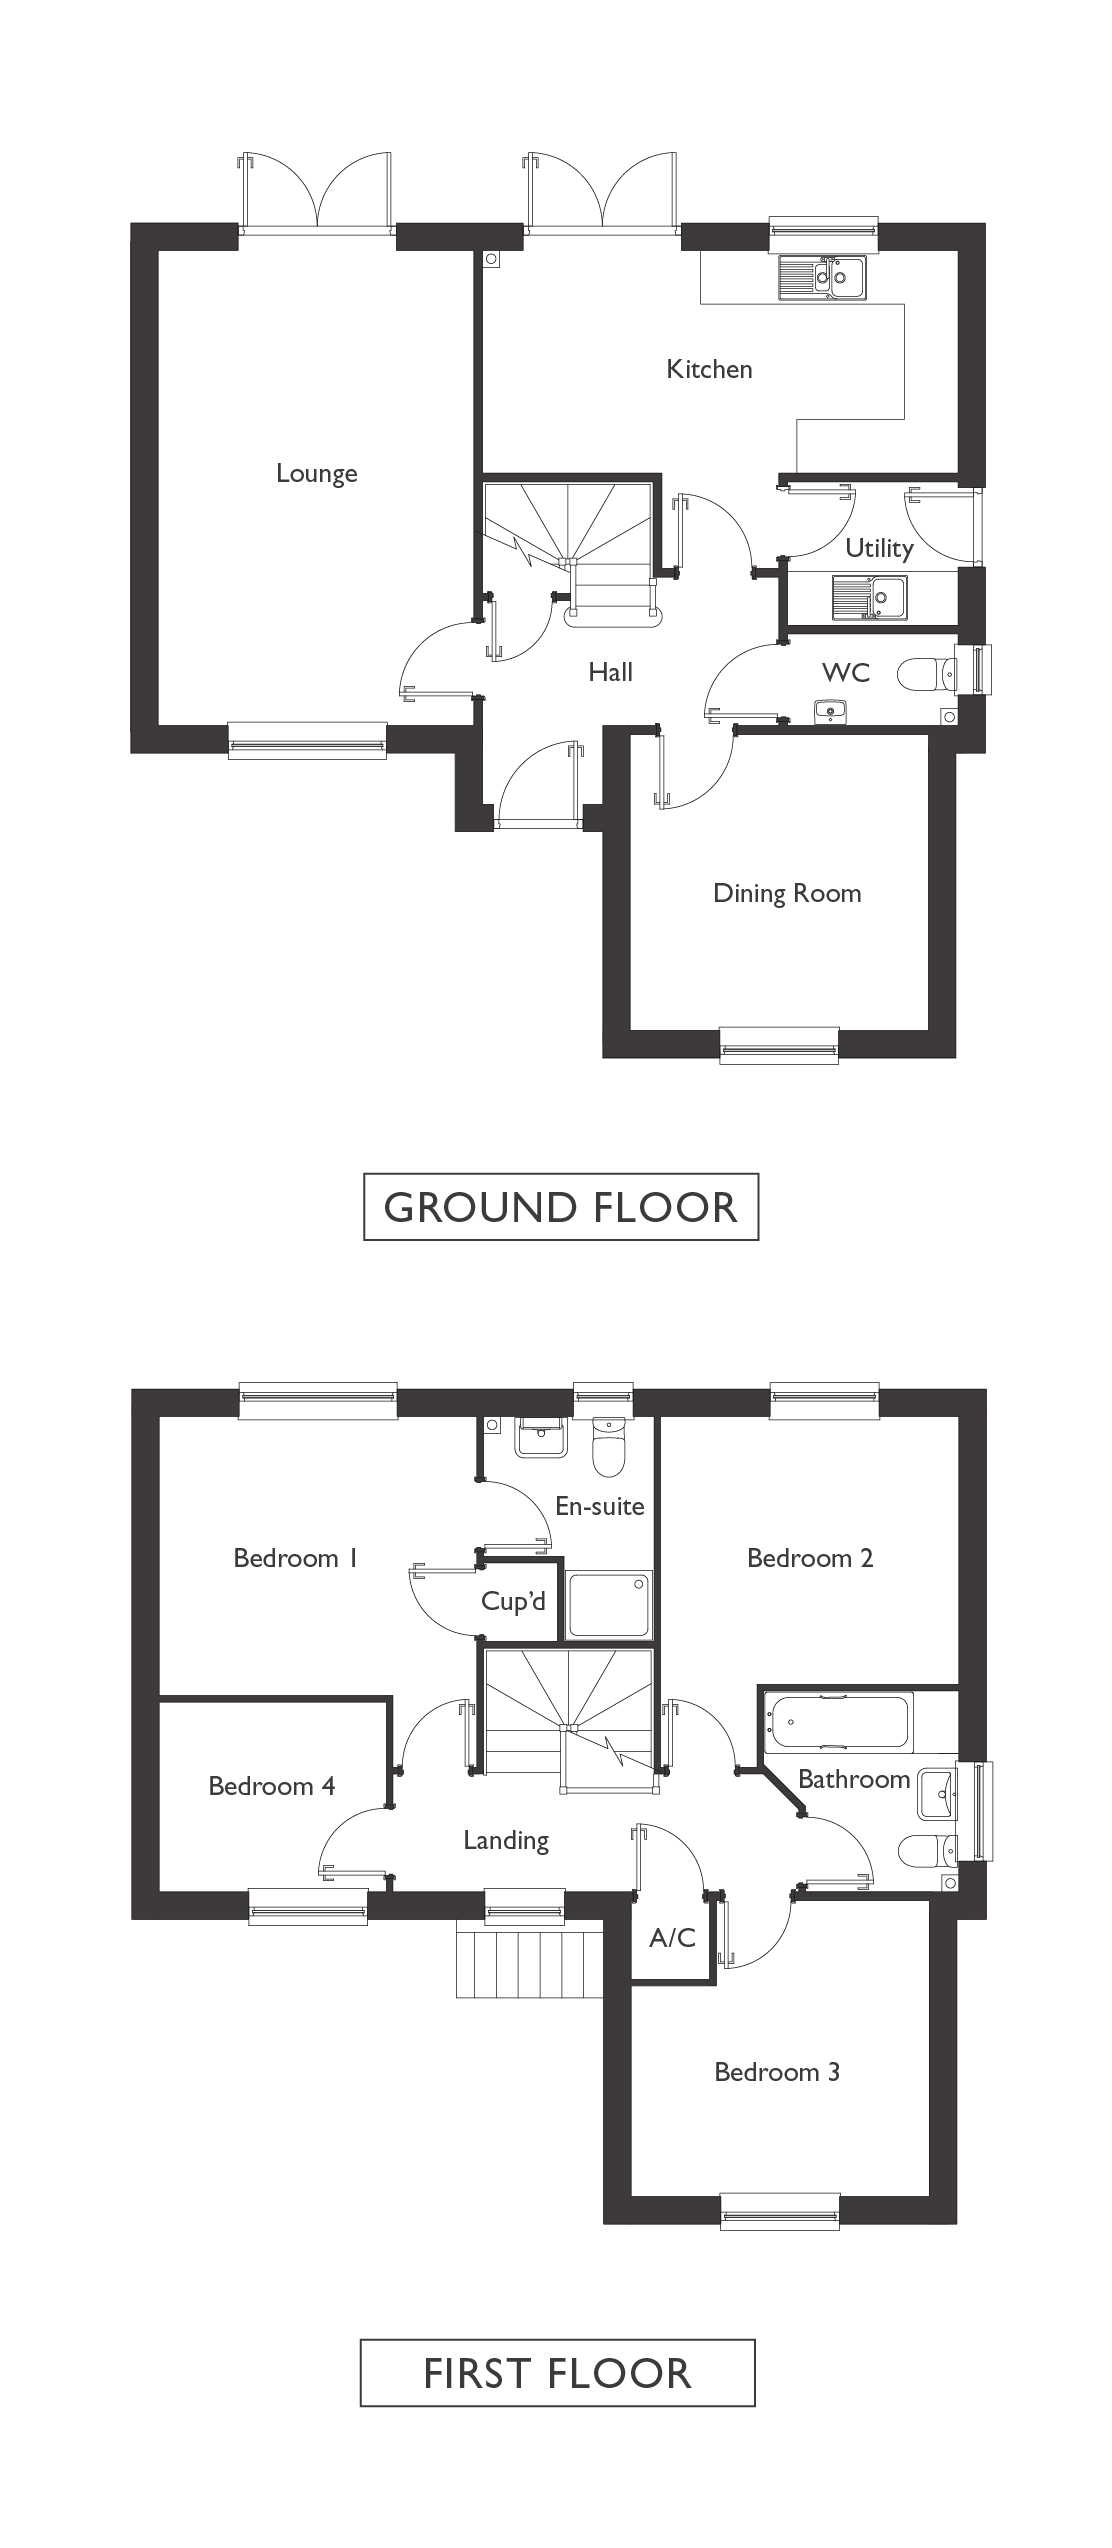 Valley View - Plot 8 - Yoxford - Floor Plans